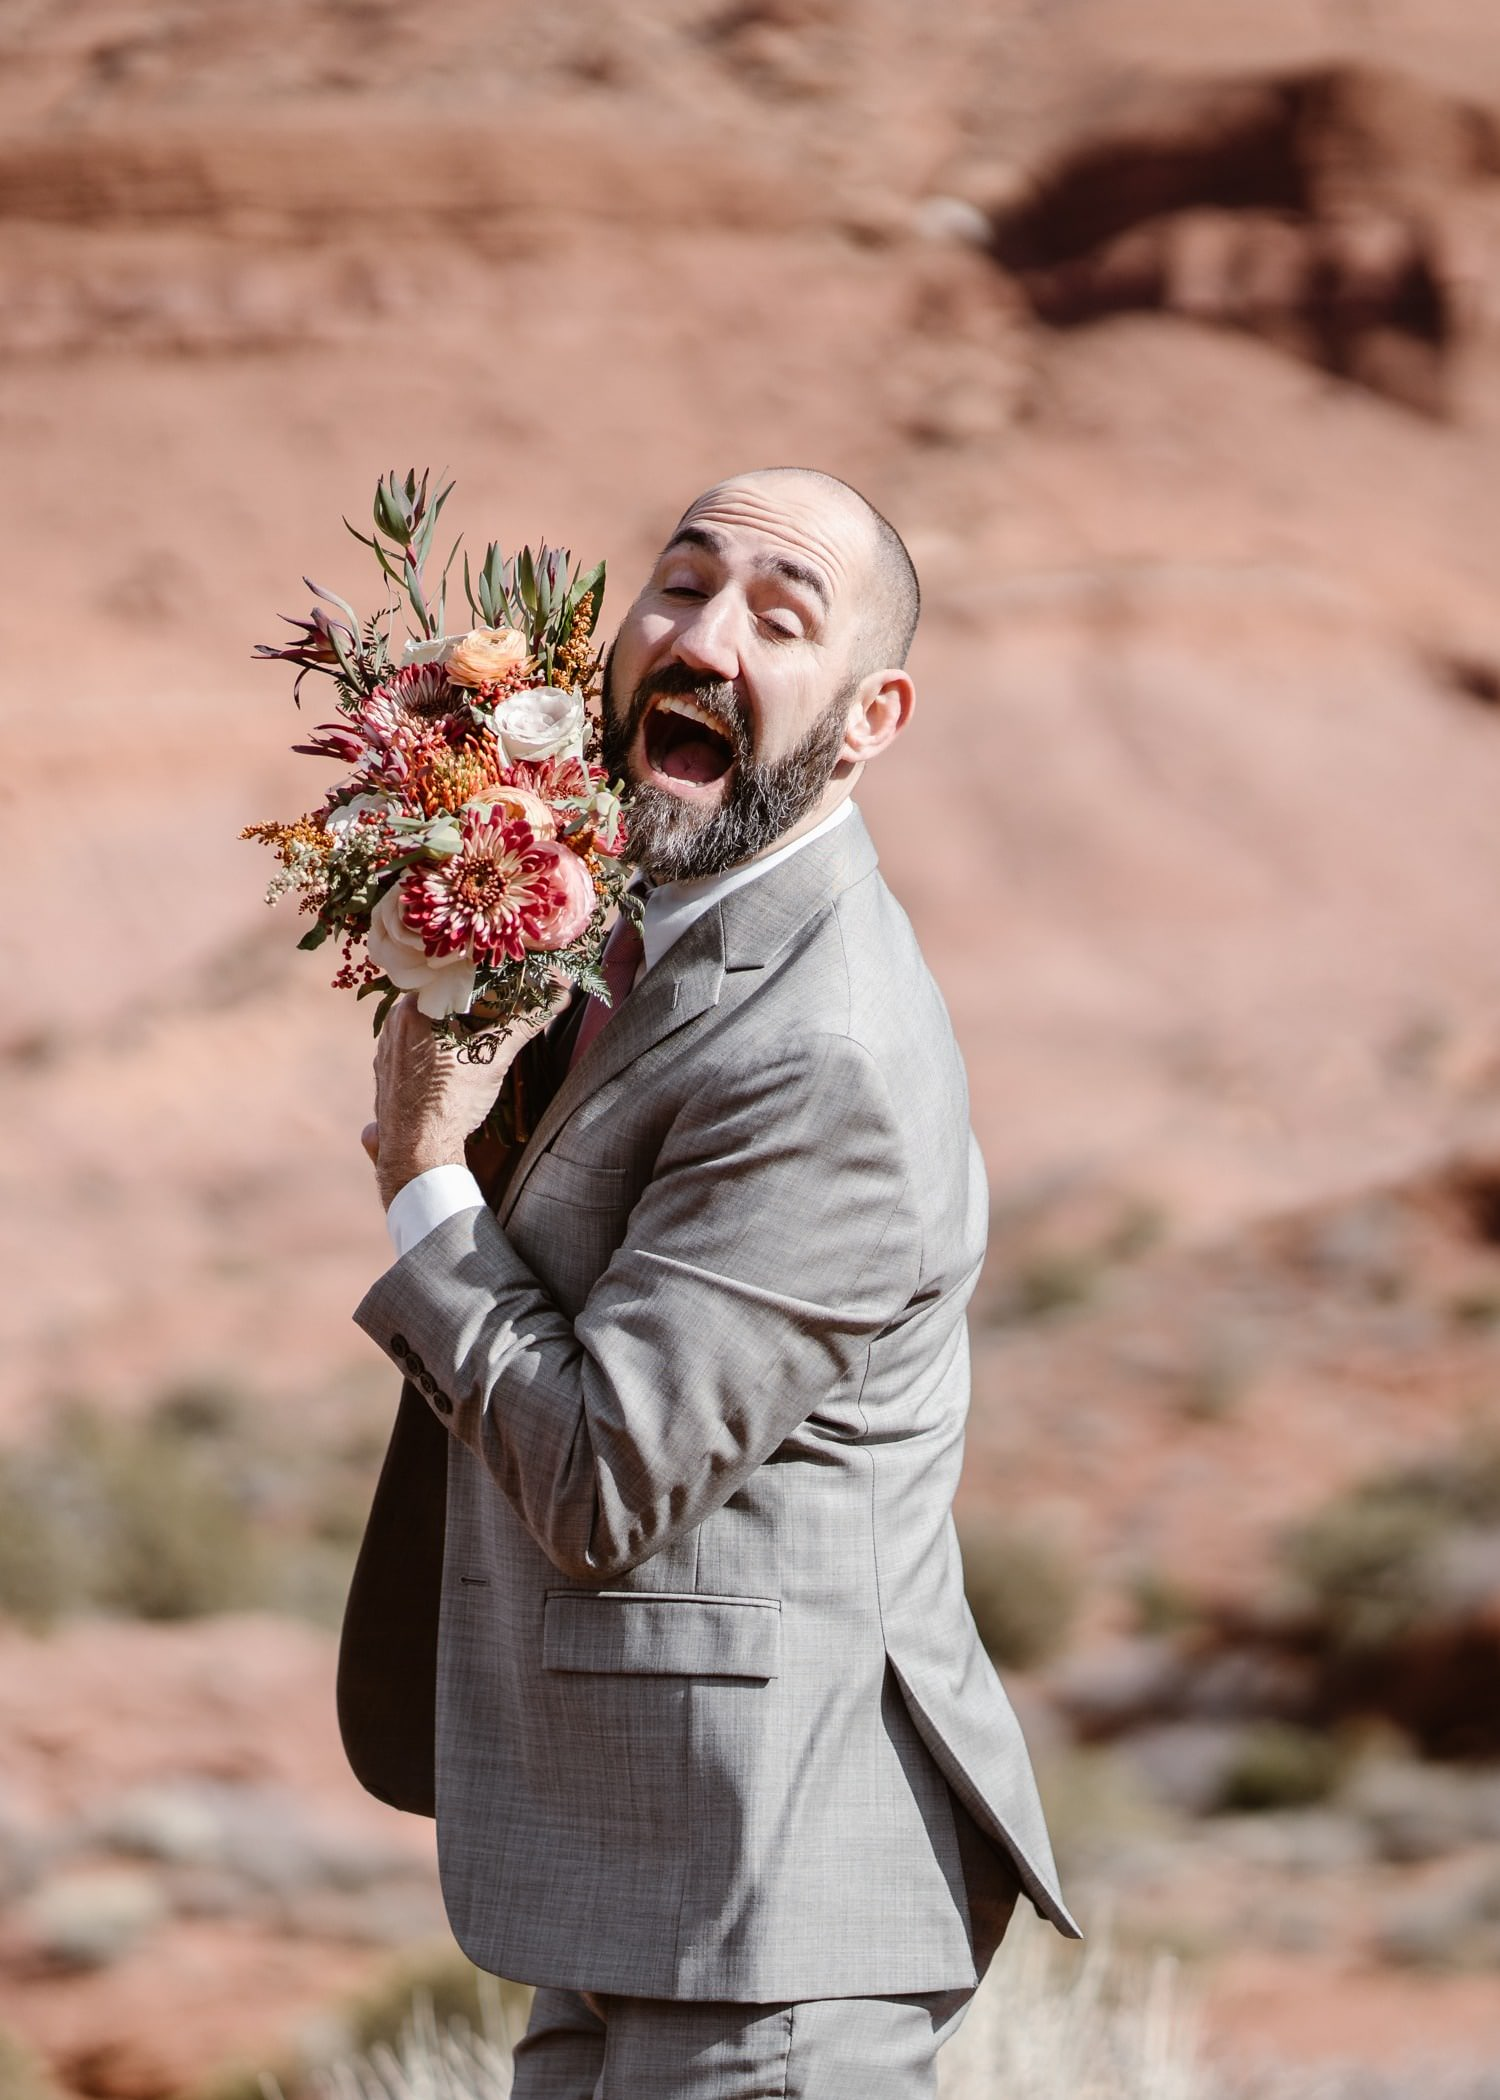 Groom With Flowers at Moab Elopement